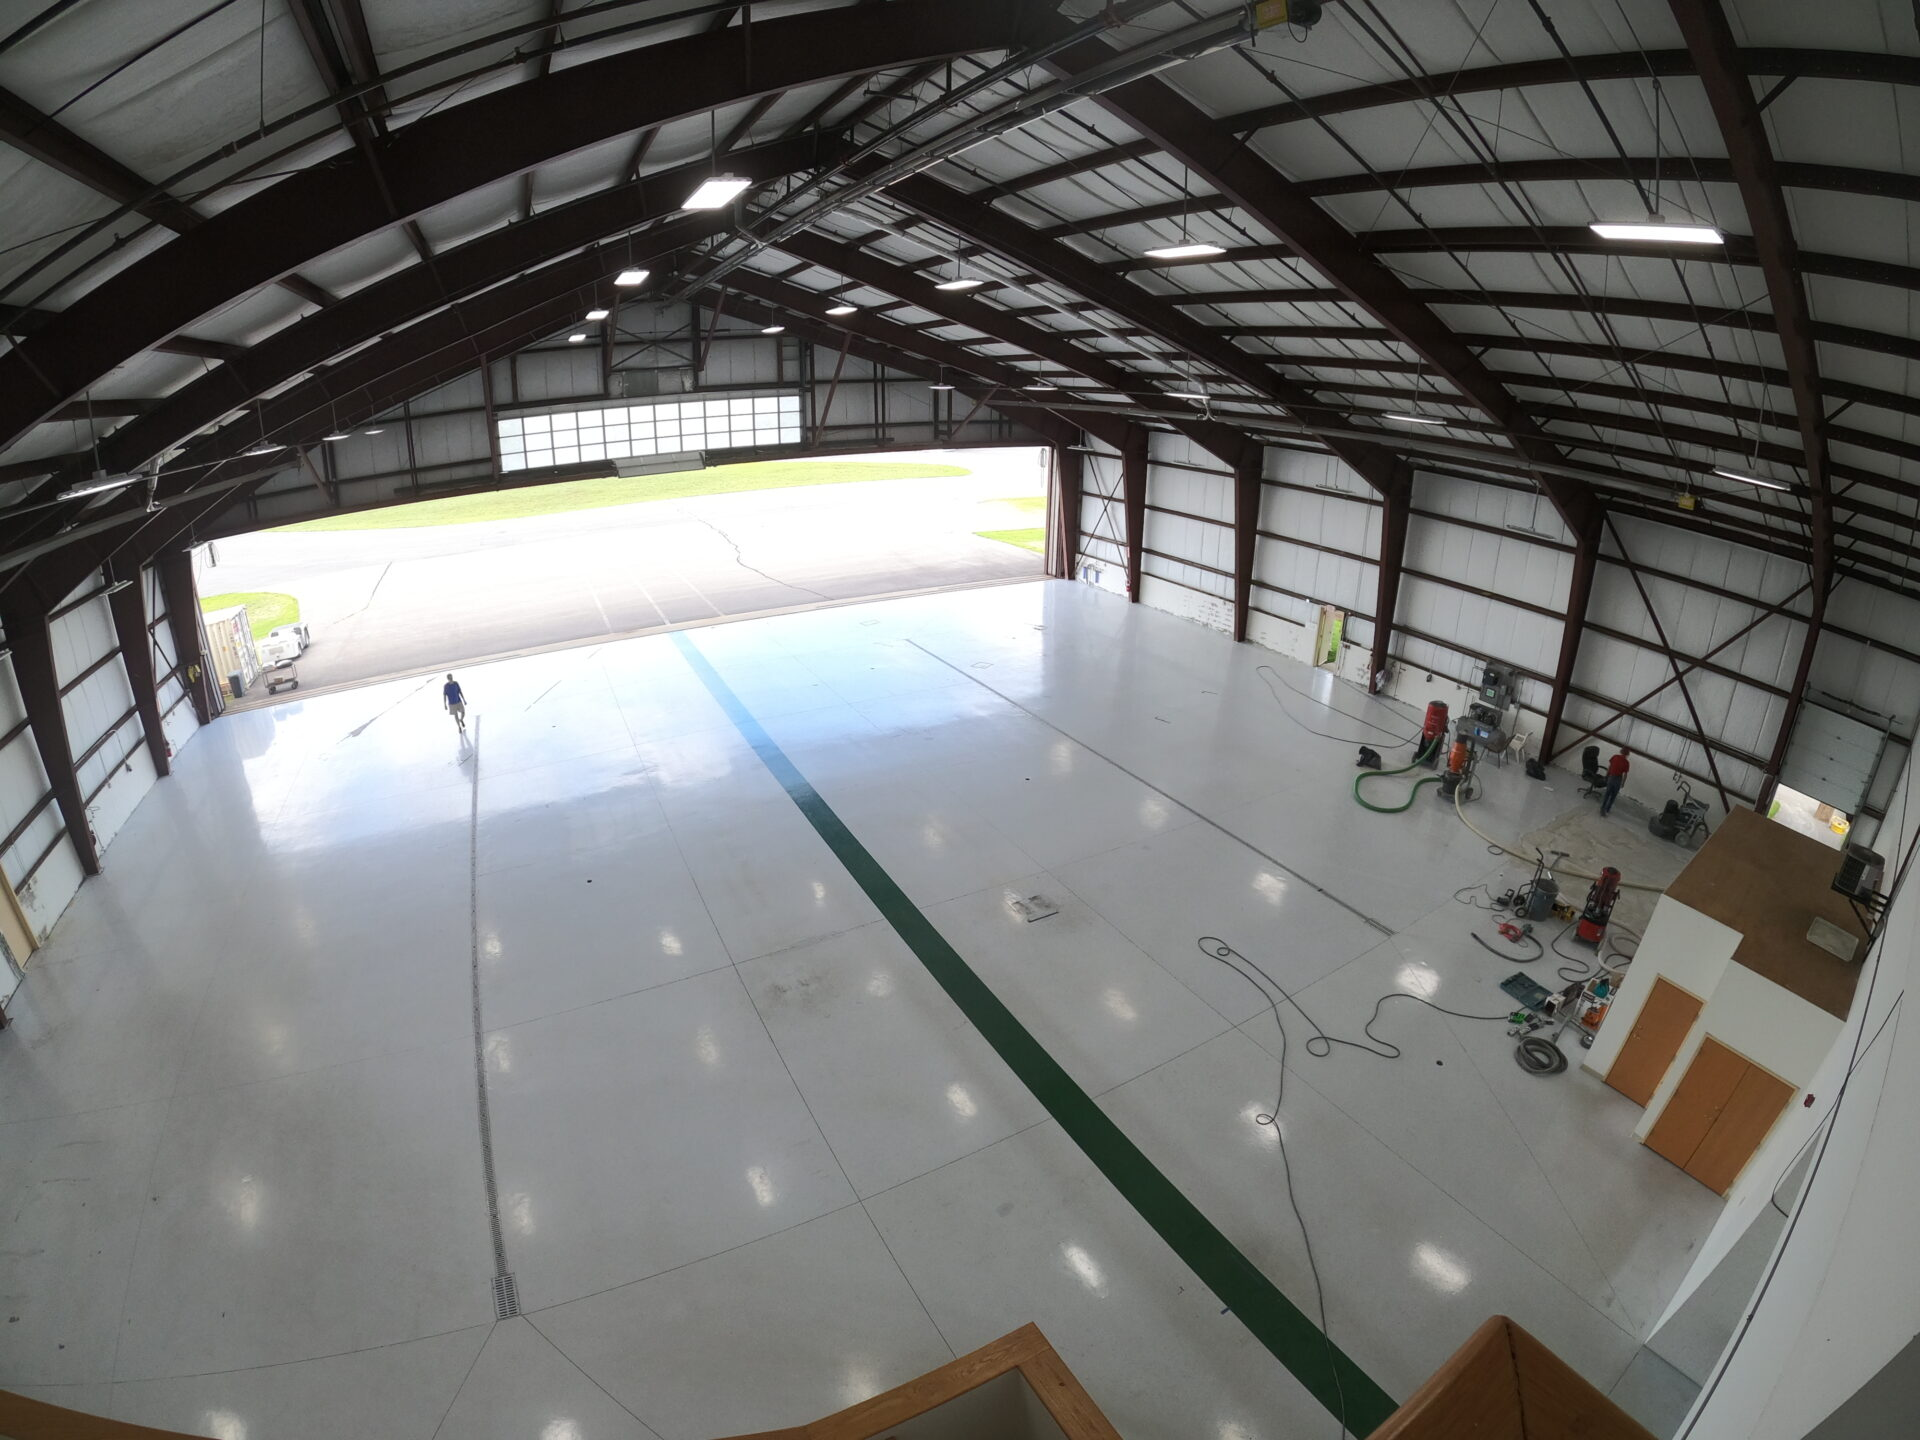 A before and after of an epoxy removal job in Nashua, New Hampshire in an aircraft hangar.